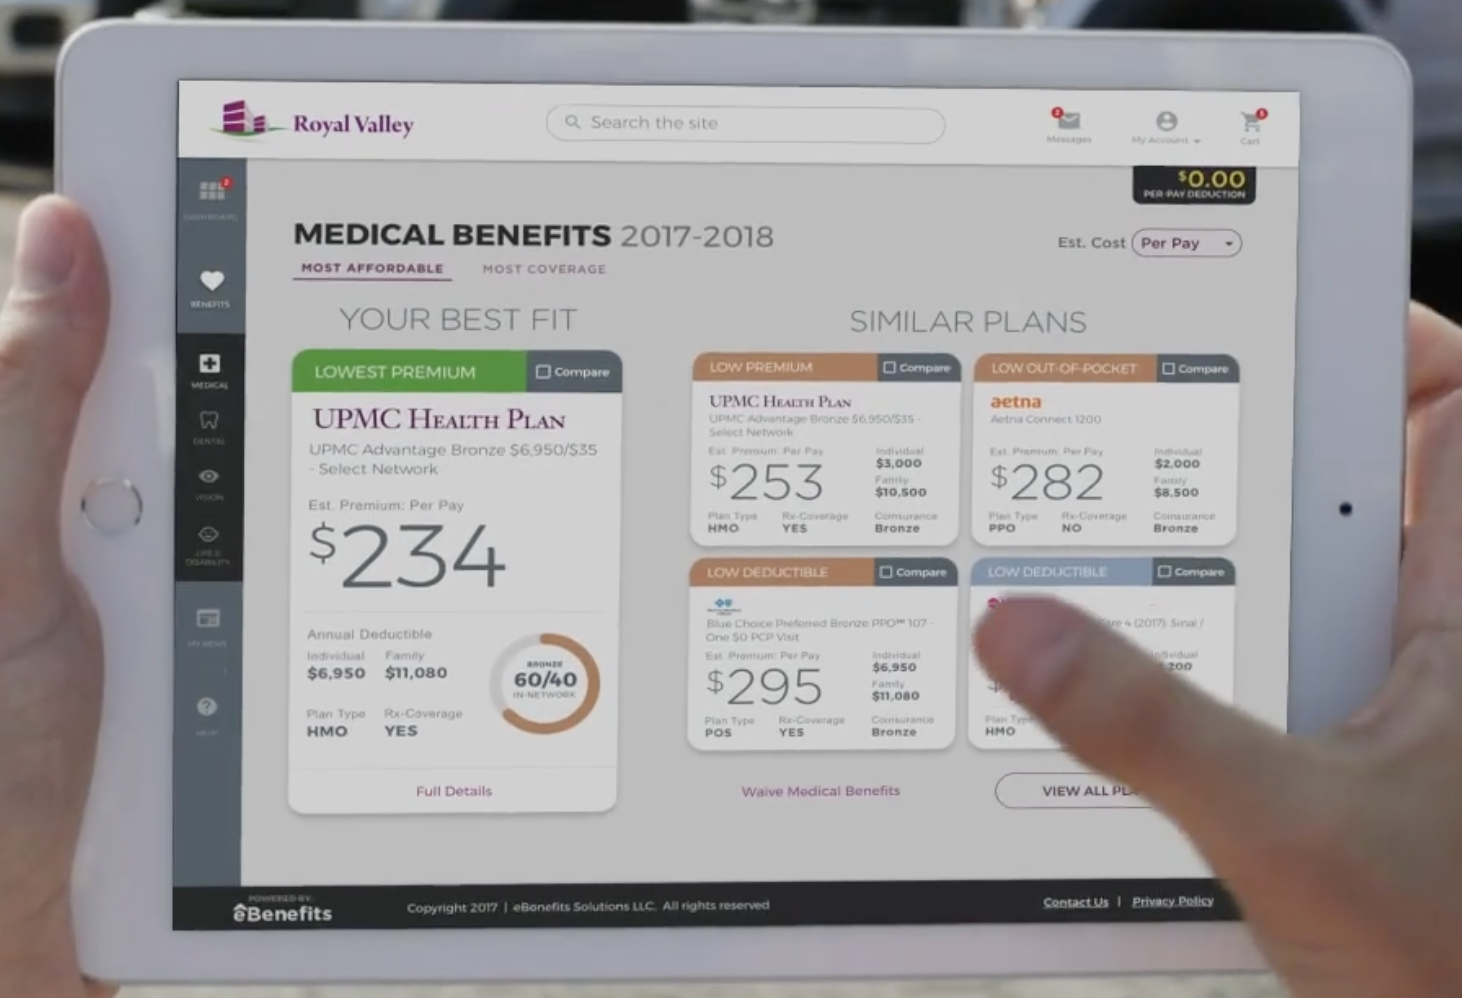 Employees can view their medical benefits